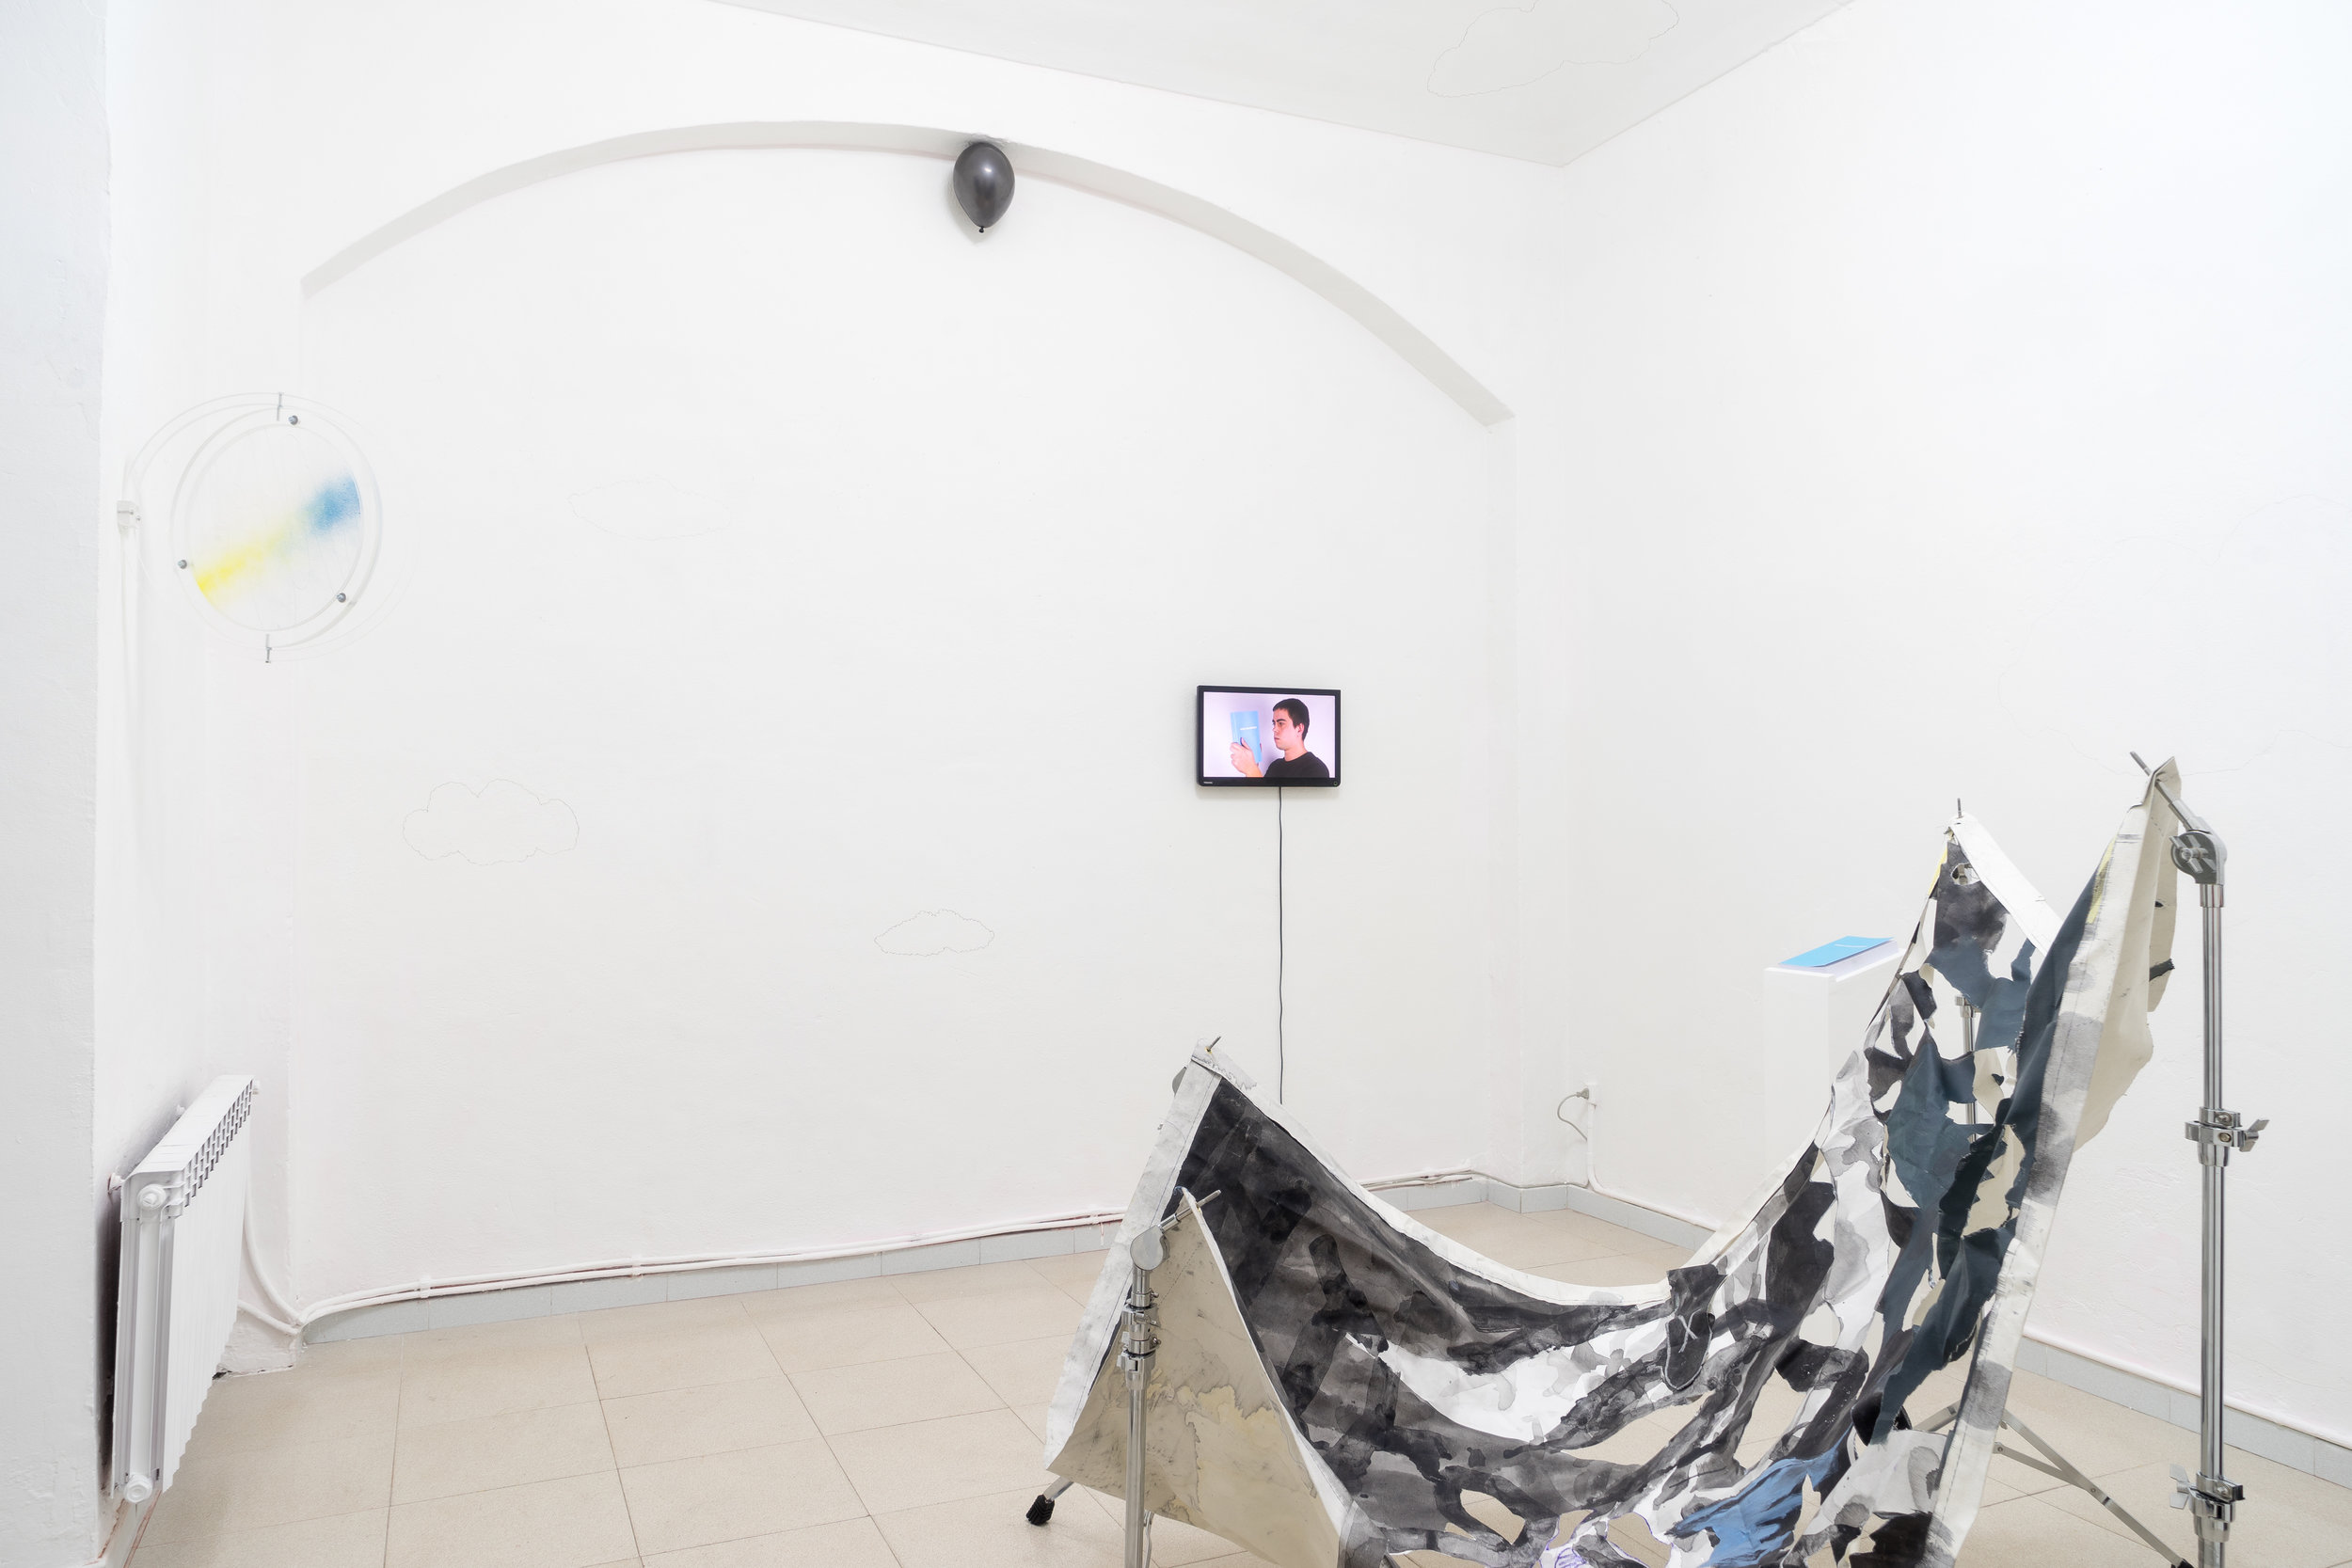 the-theory-of-clouds-spaziobuonasera-1-installation-view.jpg